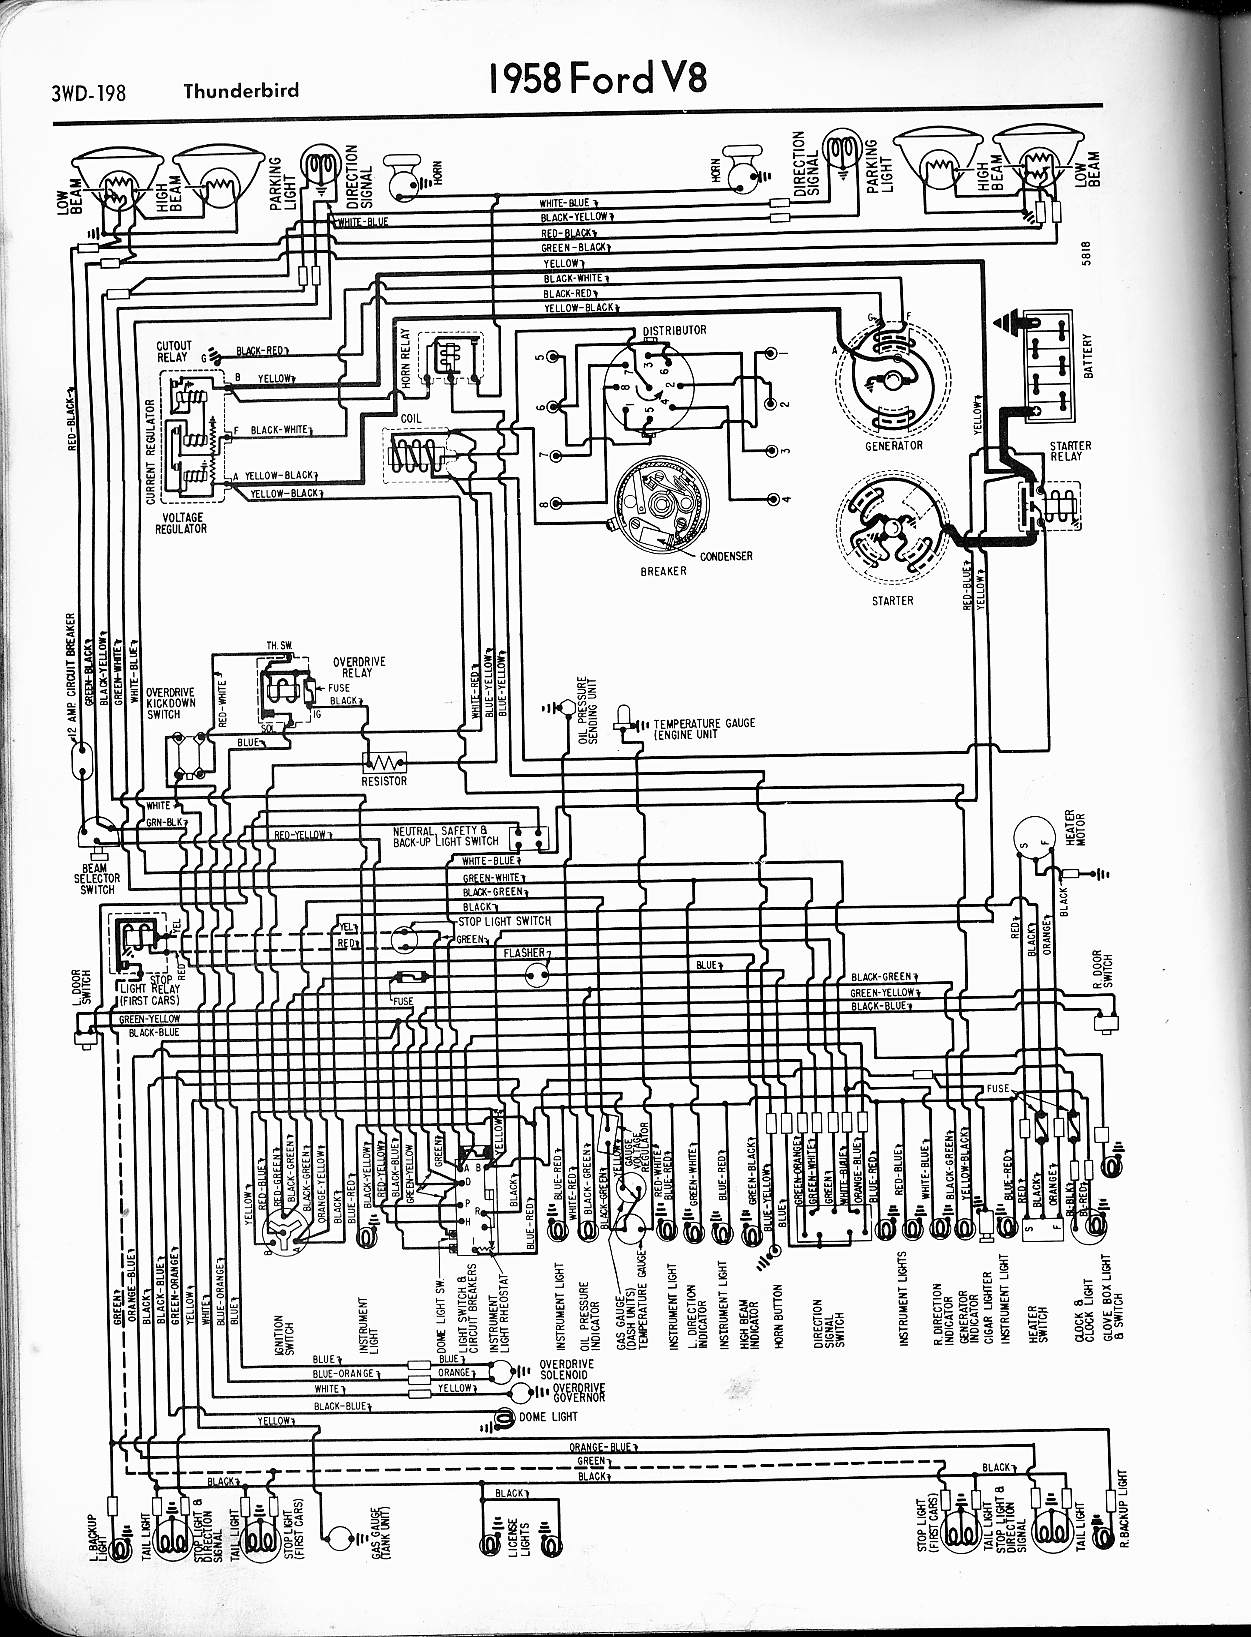 1957 ford wiring diagram wiring diagram general 65 Fairlane 2 Door Wagon